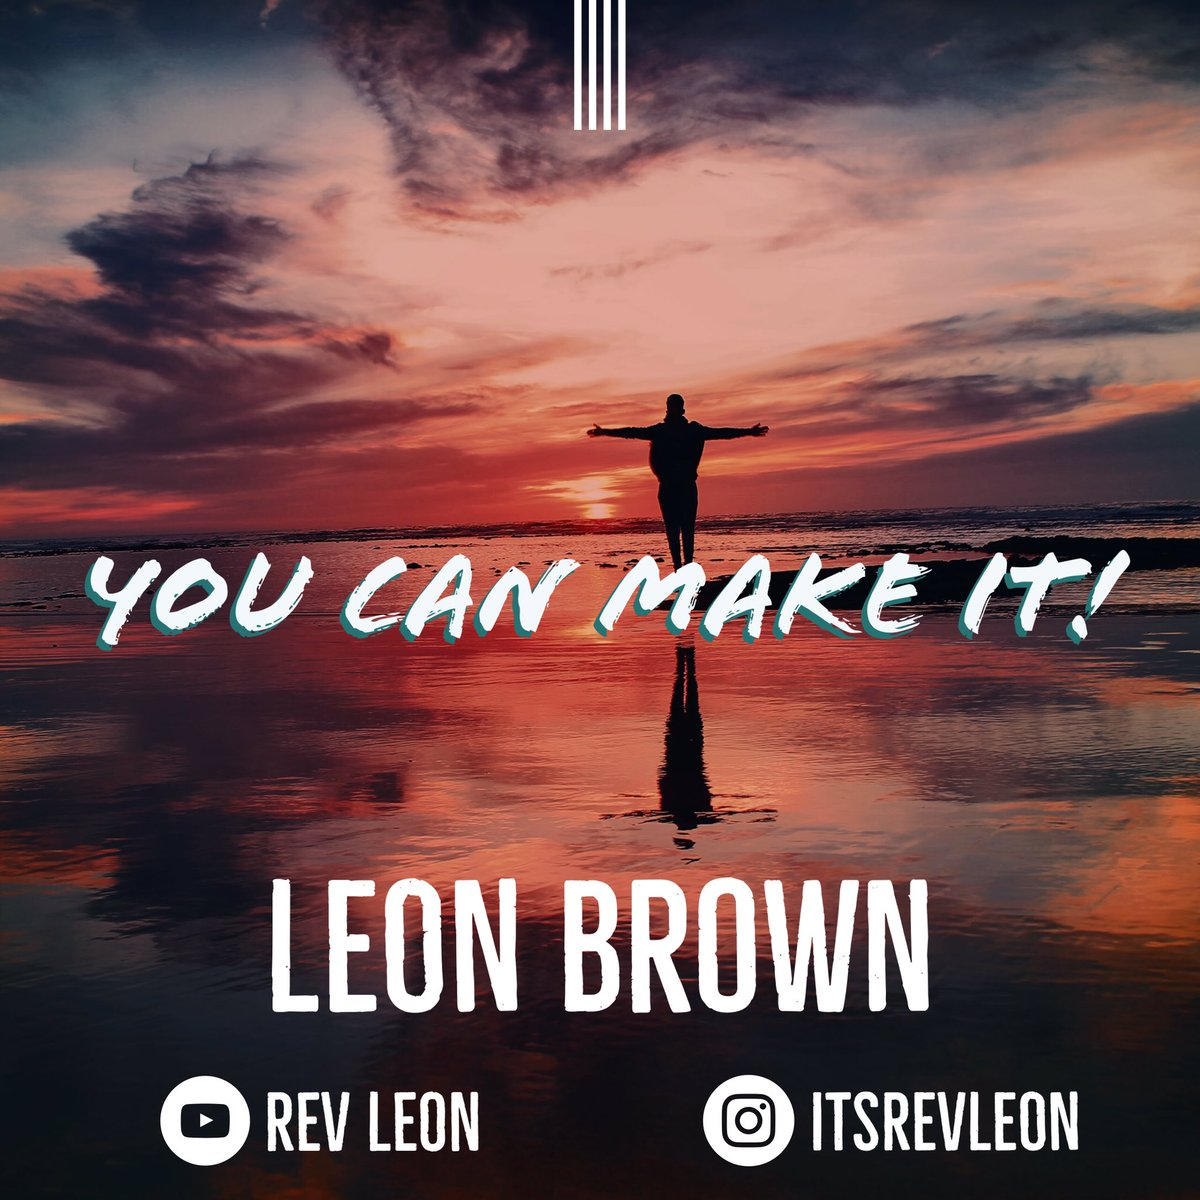 You Can Make It - Leon Brown Cover Art 2.jpg